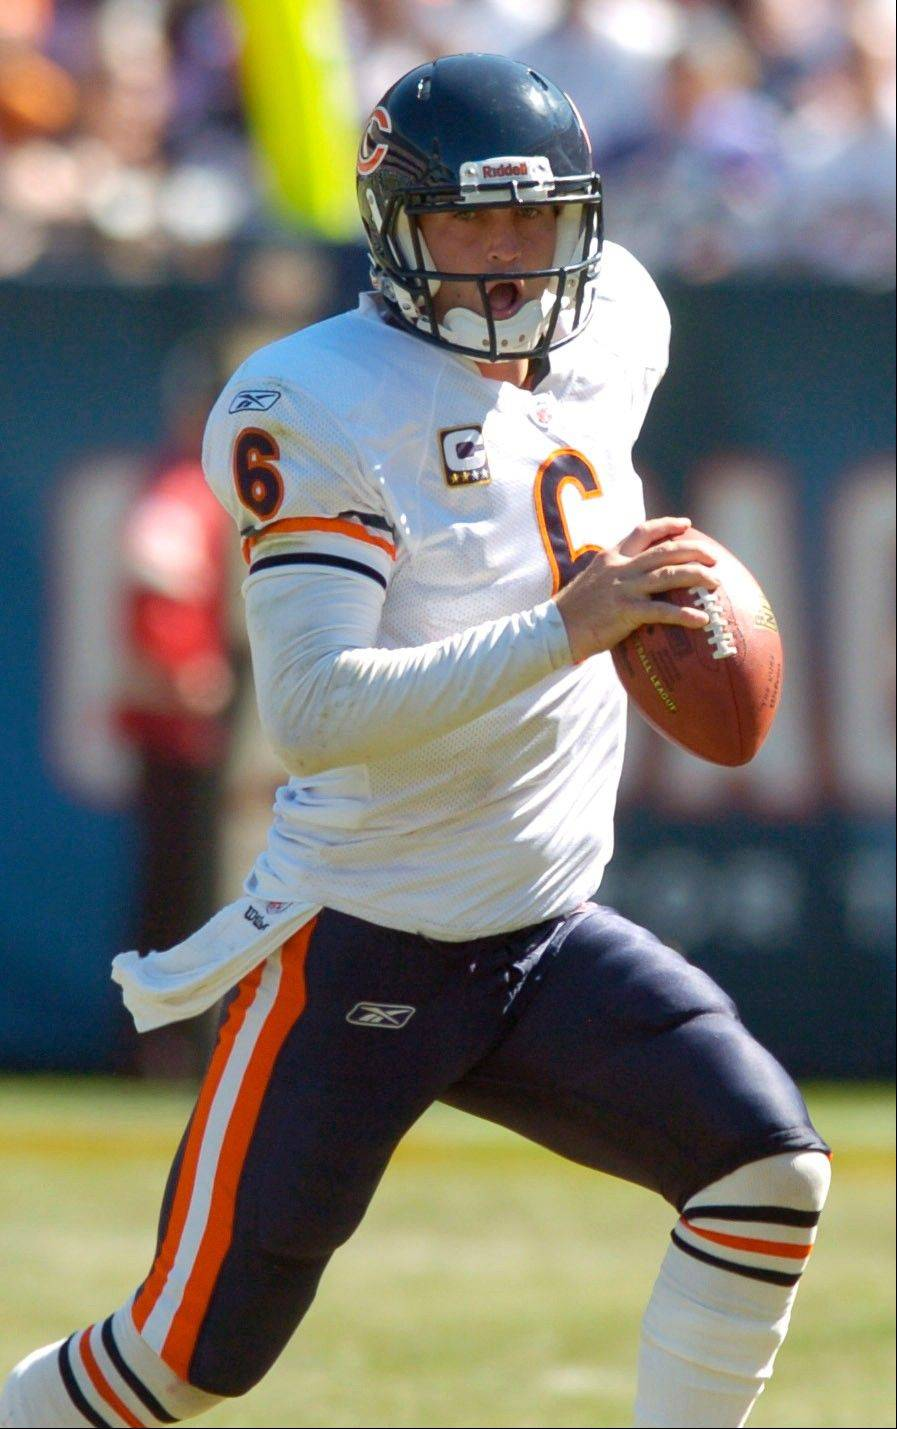 JOE LEWNARD/jlewnard@dailyherald.com � Bears quarterback Jay Cutler rushes for a five-yard gain during Sunday's game at Soldier Field.